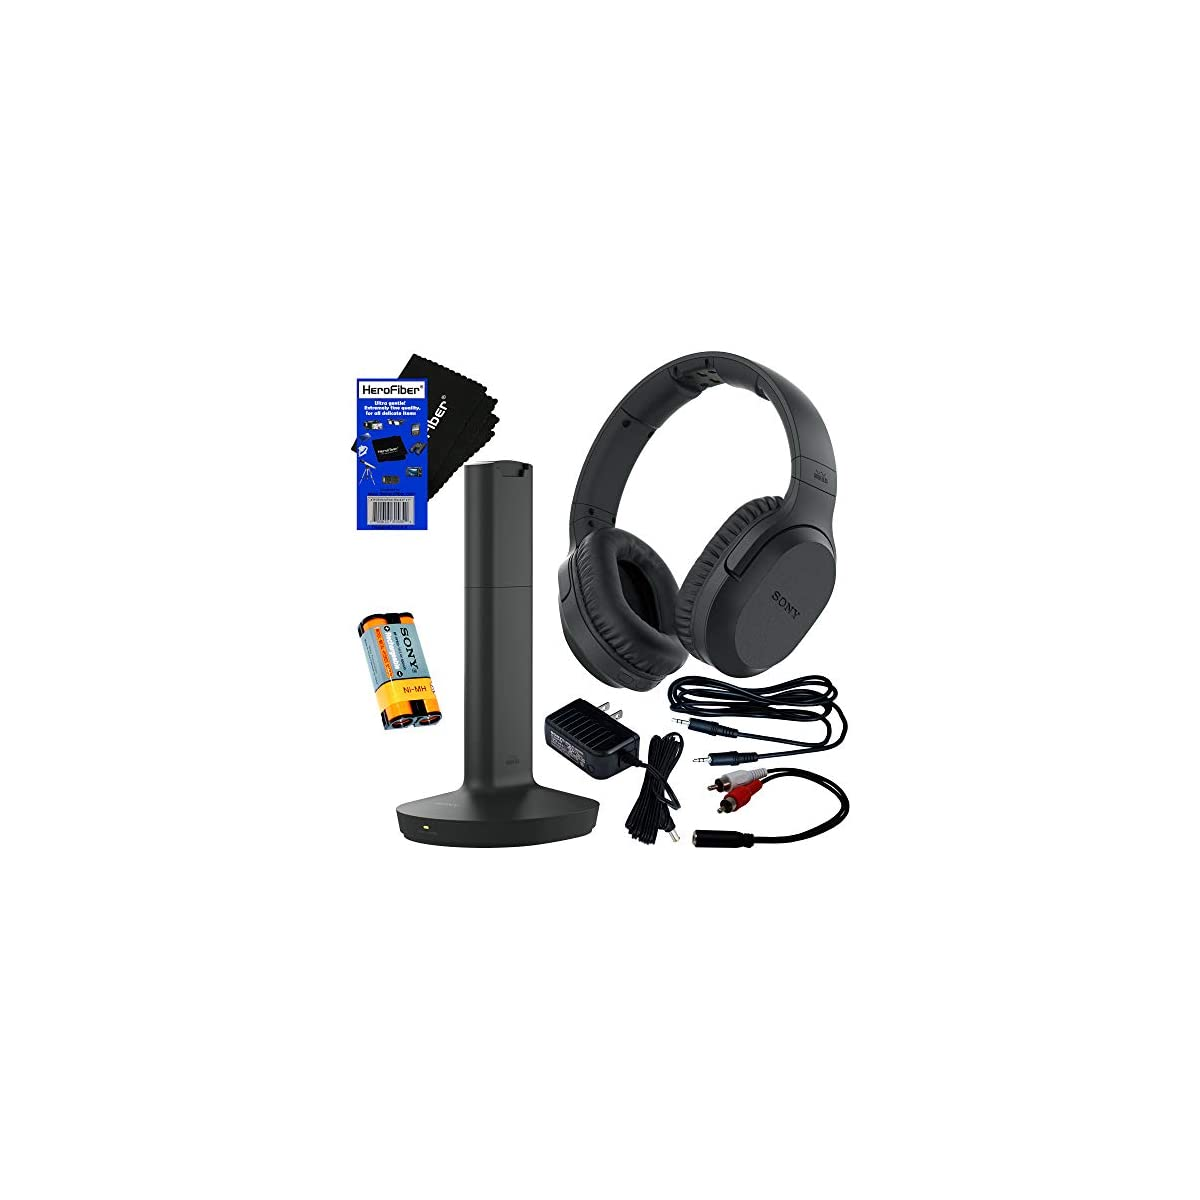 Sony Wireless Over Ear Noise Reduction Headphones Whrf400r With Transmitter Dock Tmrrf400 Sony Rechargeable Battery Connecting Cables Ac Adaptor Herofiber Cleaning Cloth Welcome To Kennedy S Life Coach Business Solutions